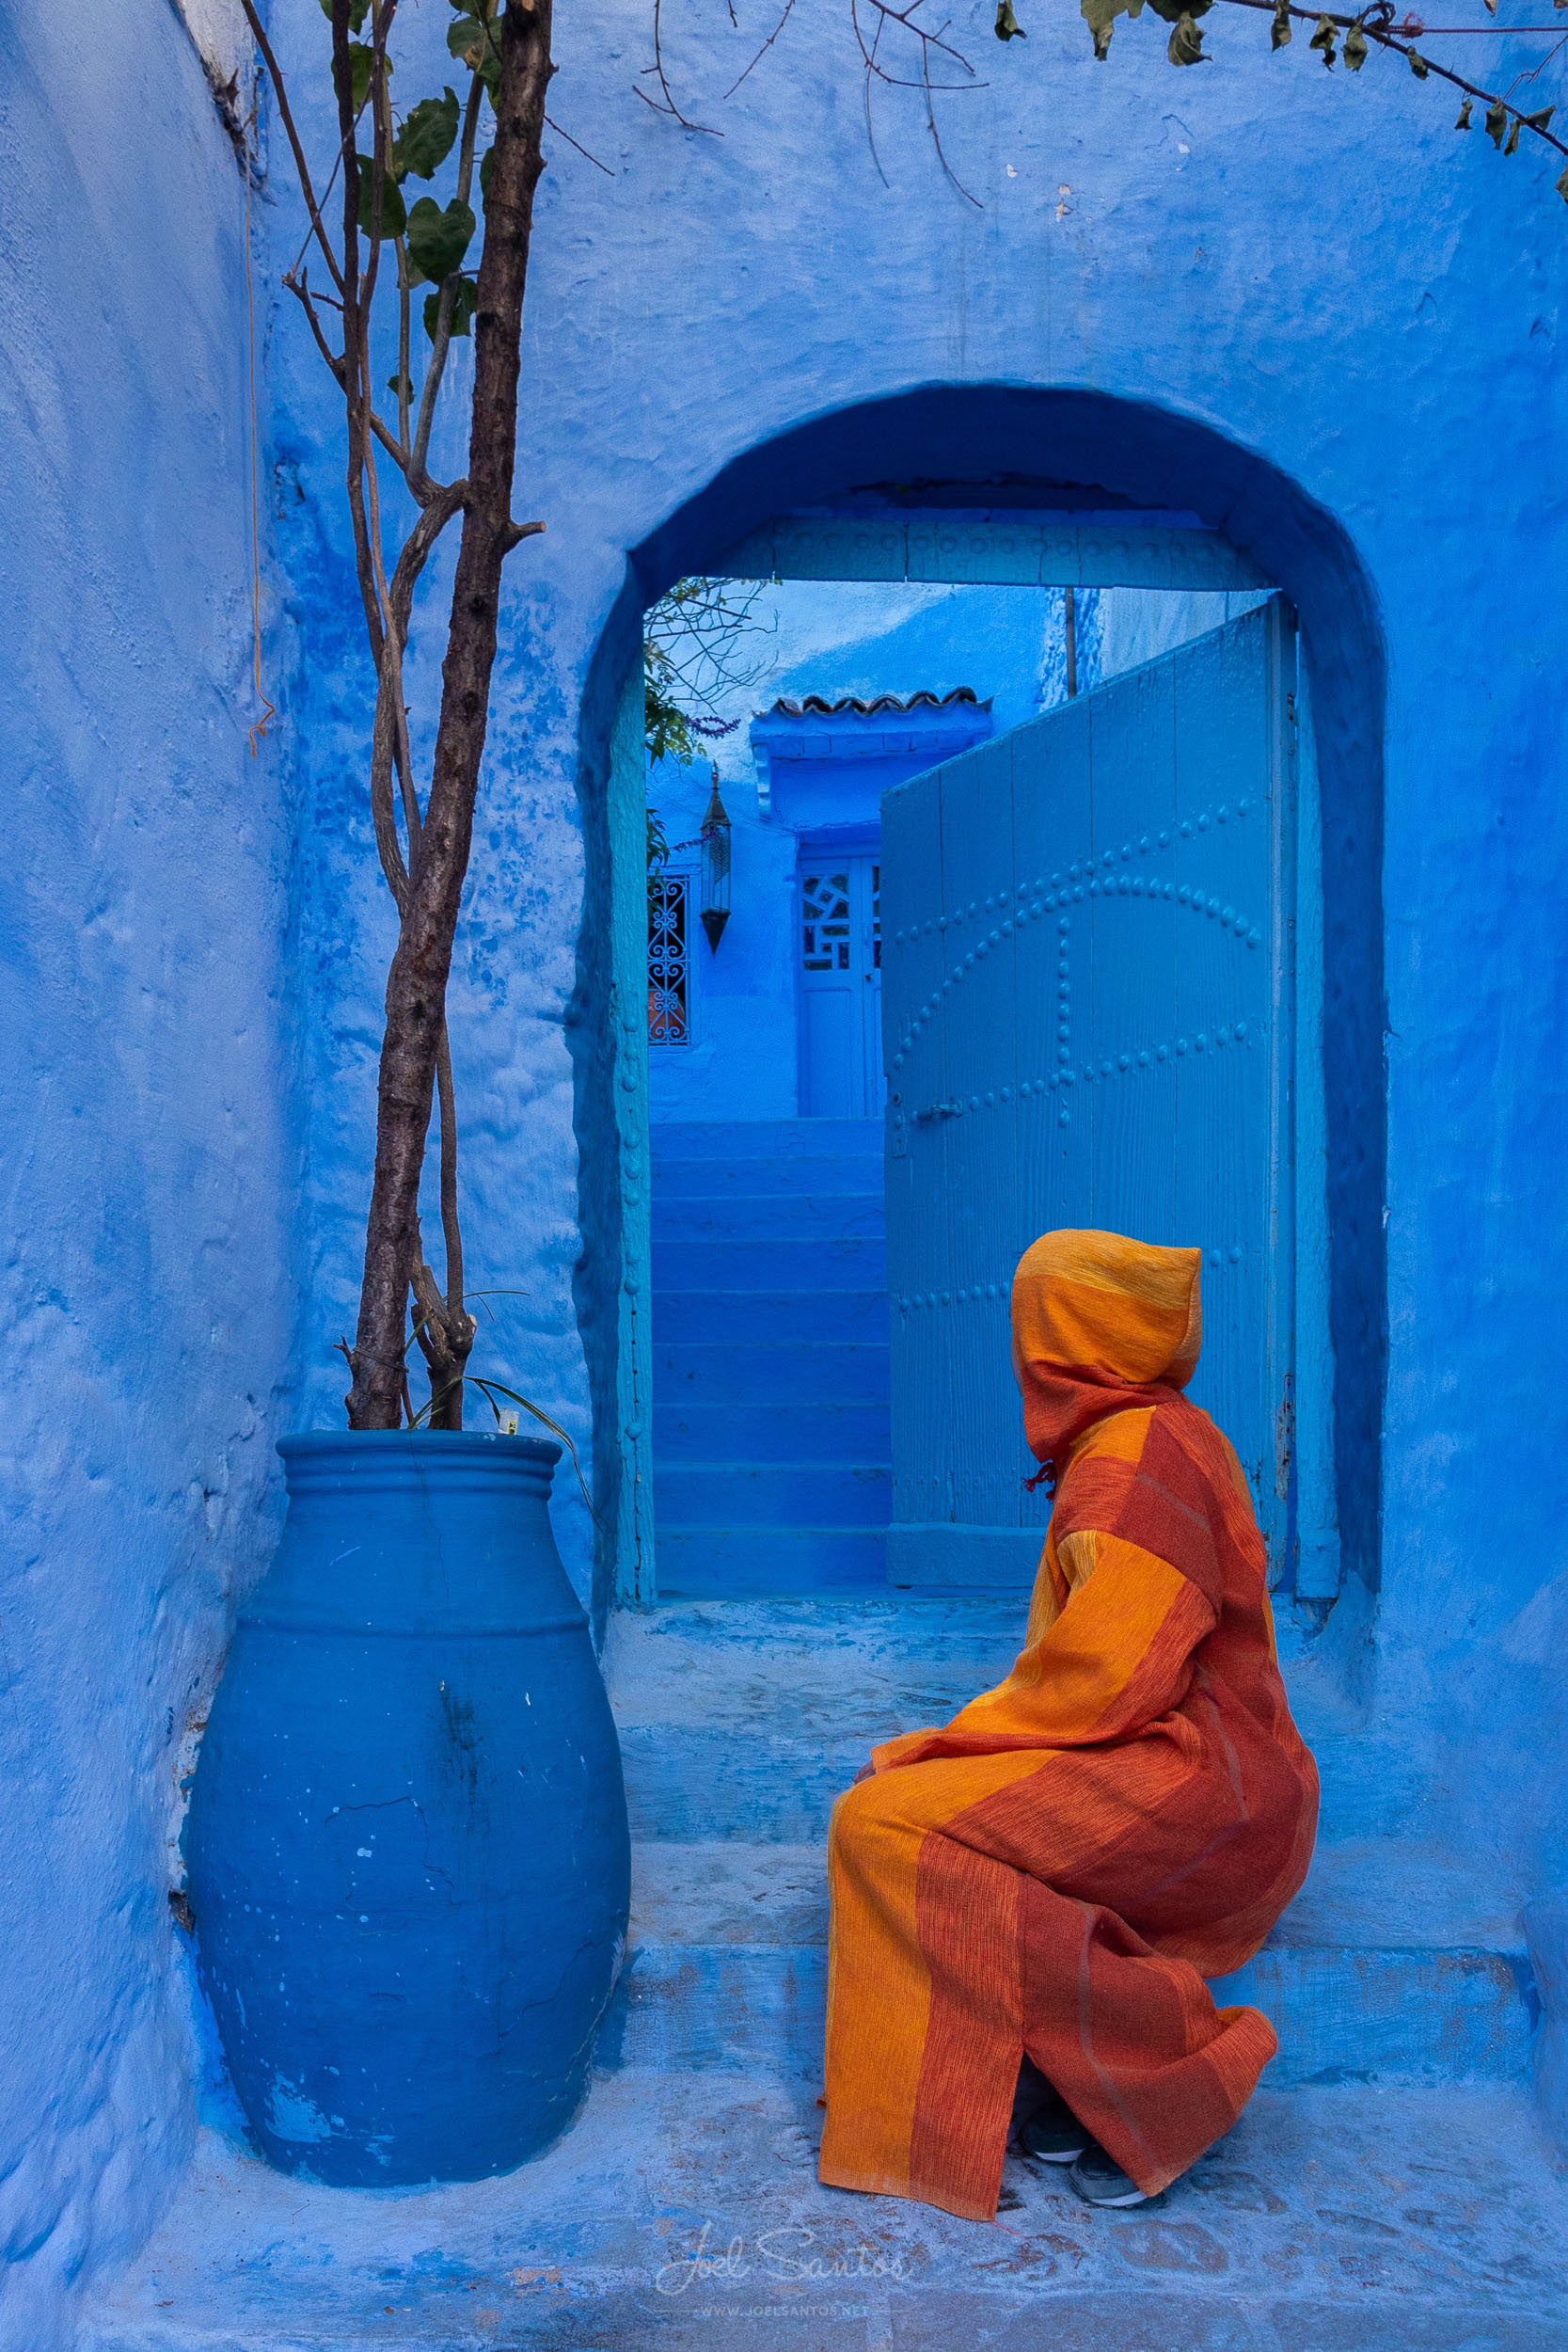 Chefchaouen, Blue city, Marocco